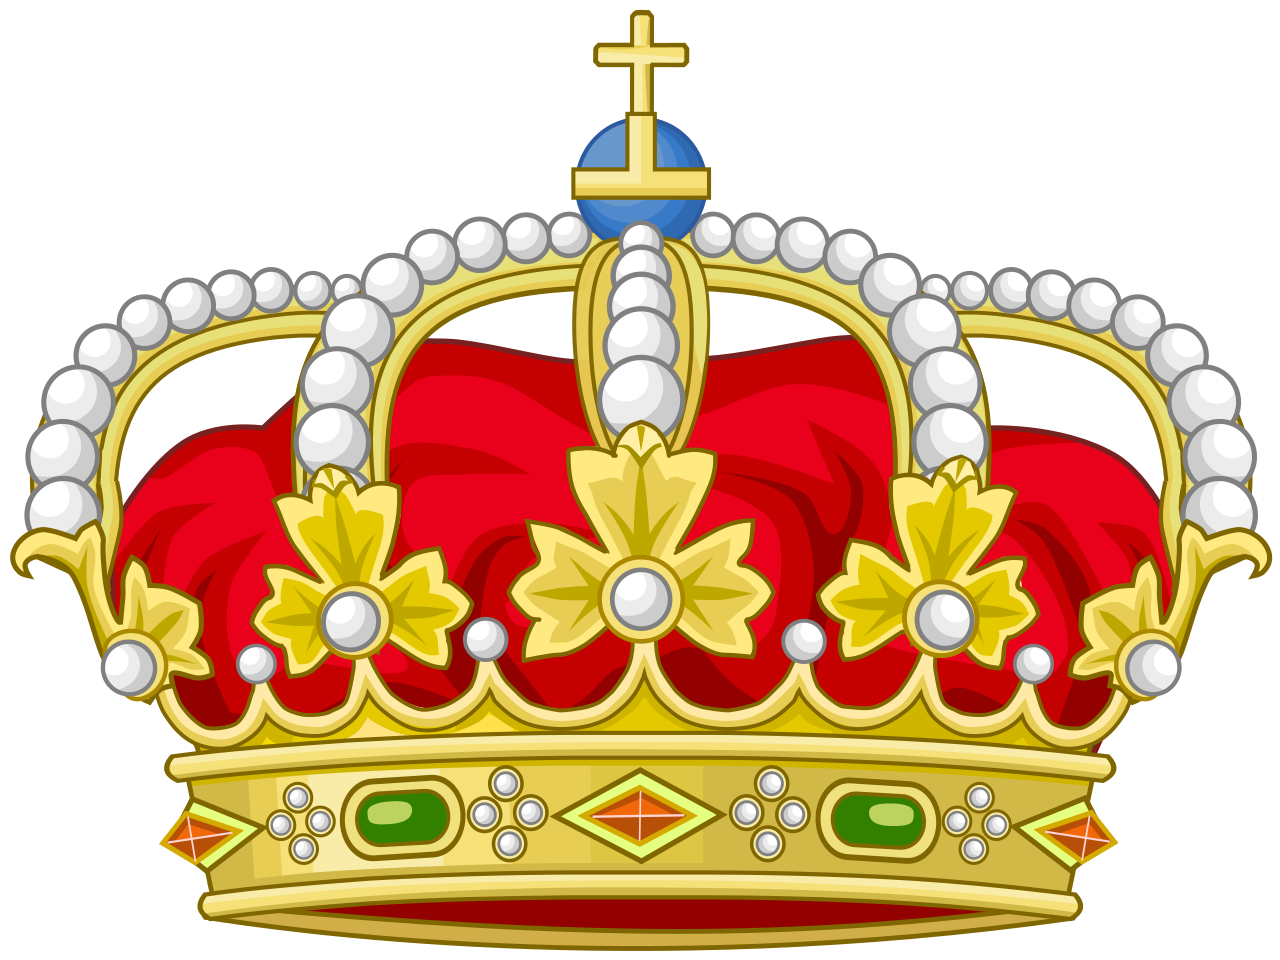 Queen clipart royal. File heraldic crown of